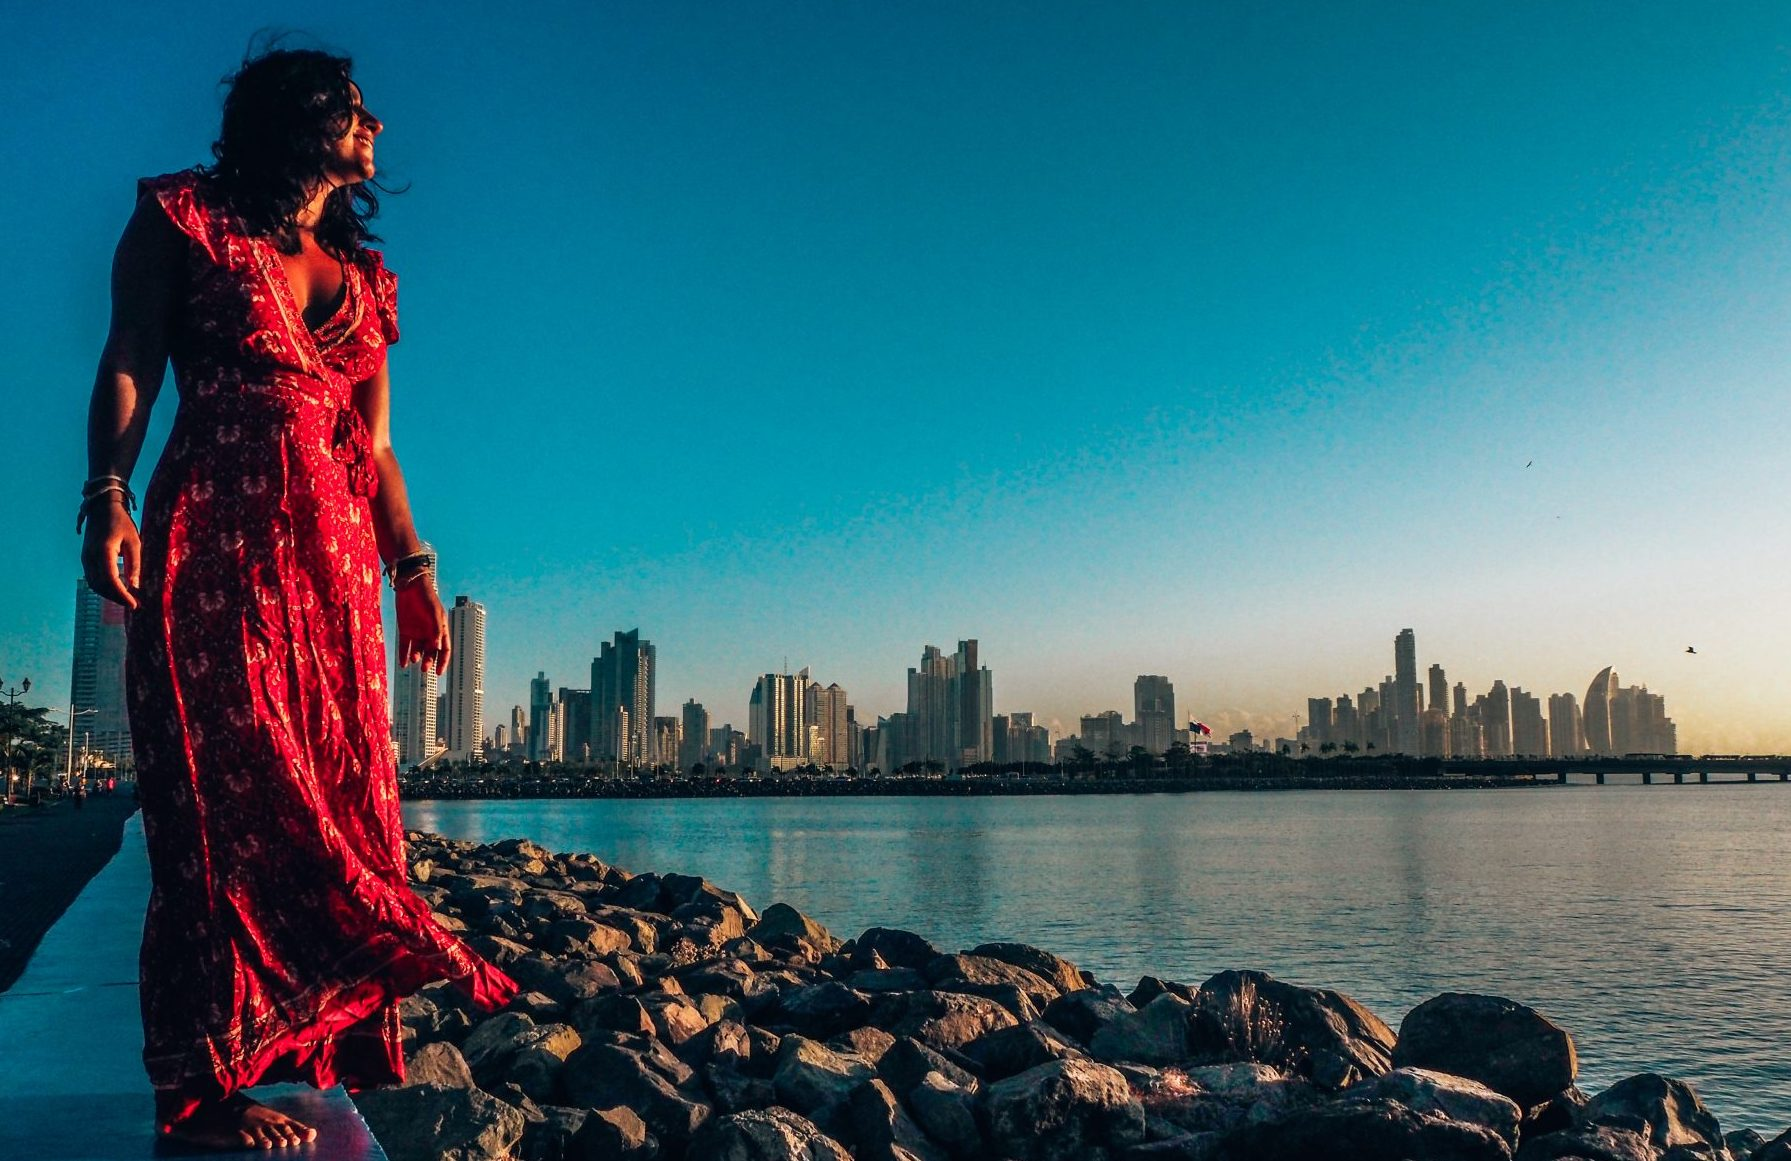 (work with me page) Sunrise with girl in red dress overlooking cityscape pano